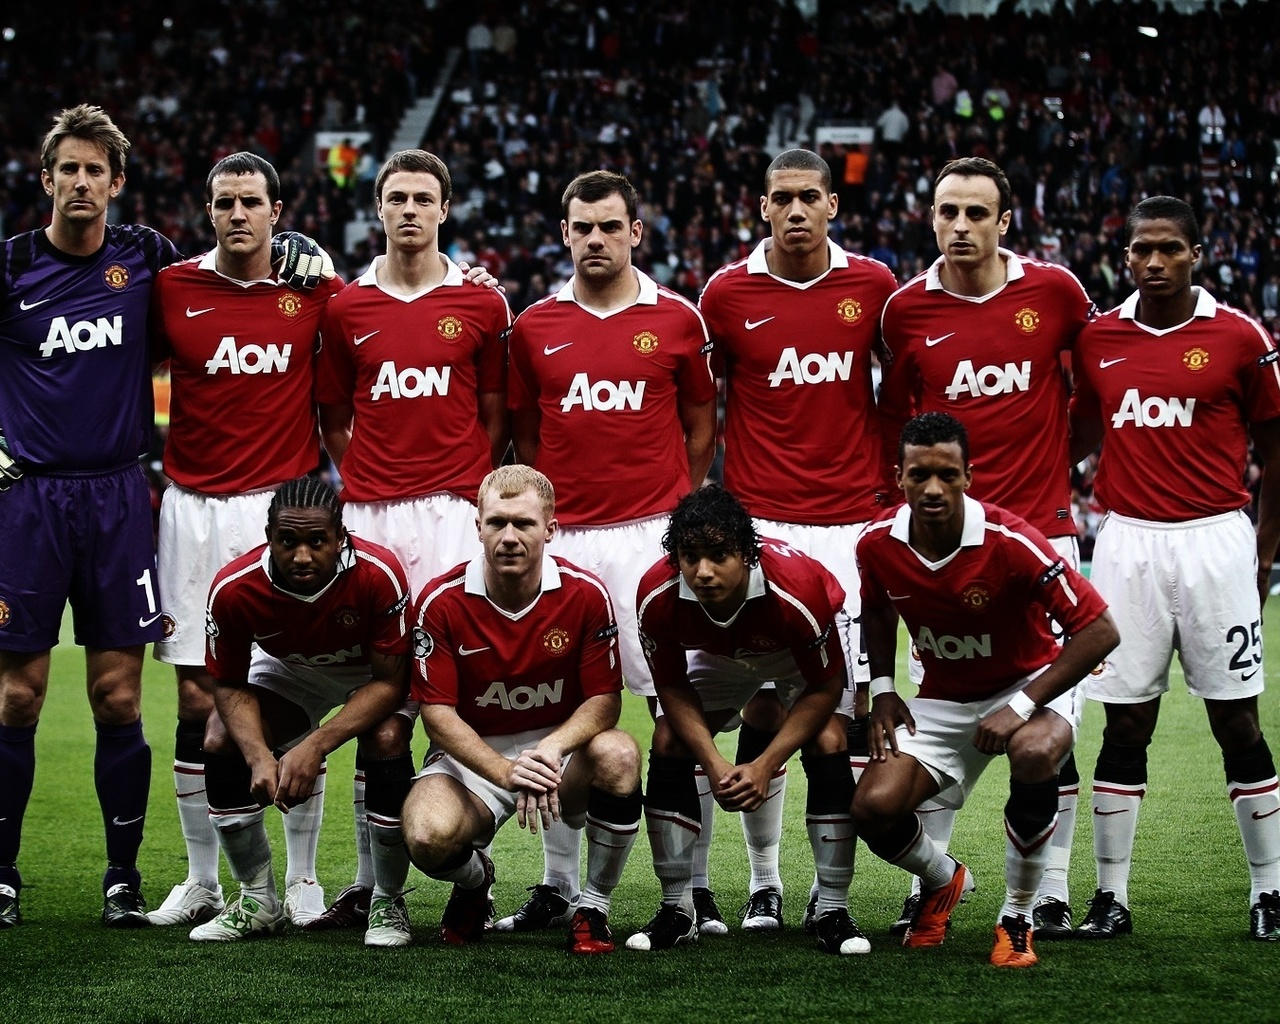 Full hd wallpapers 1920x1080 manchester united wallpapers спорт